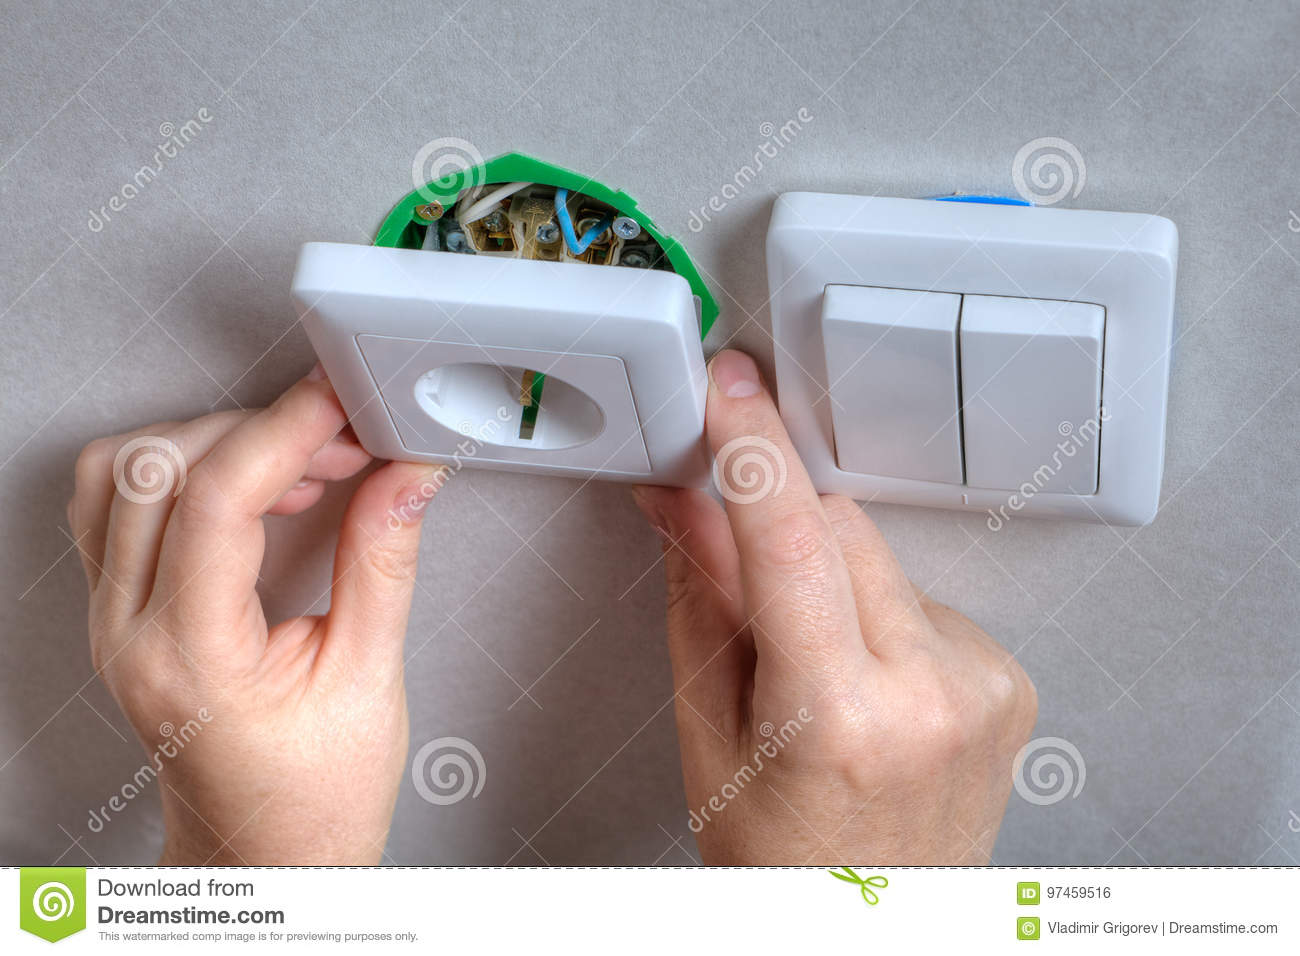 Installing The Wall Outlet Into A Wiring Box Close Up Hands Stock Switch And In Same Download